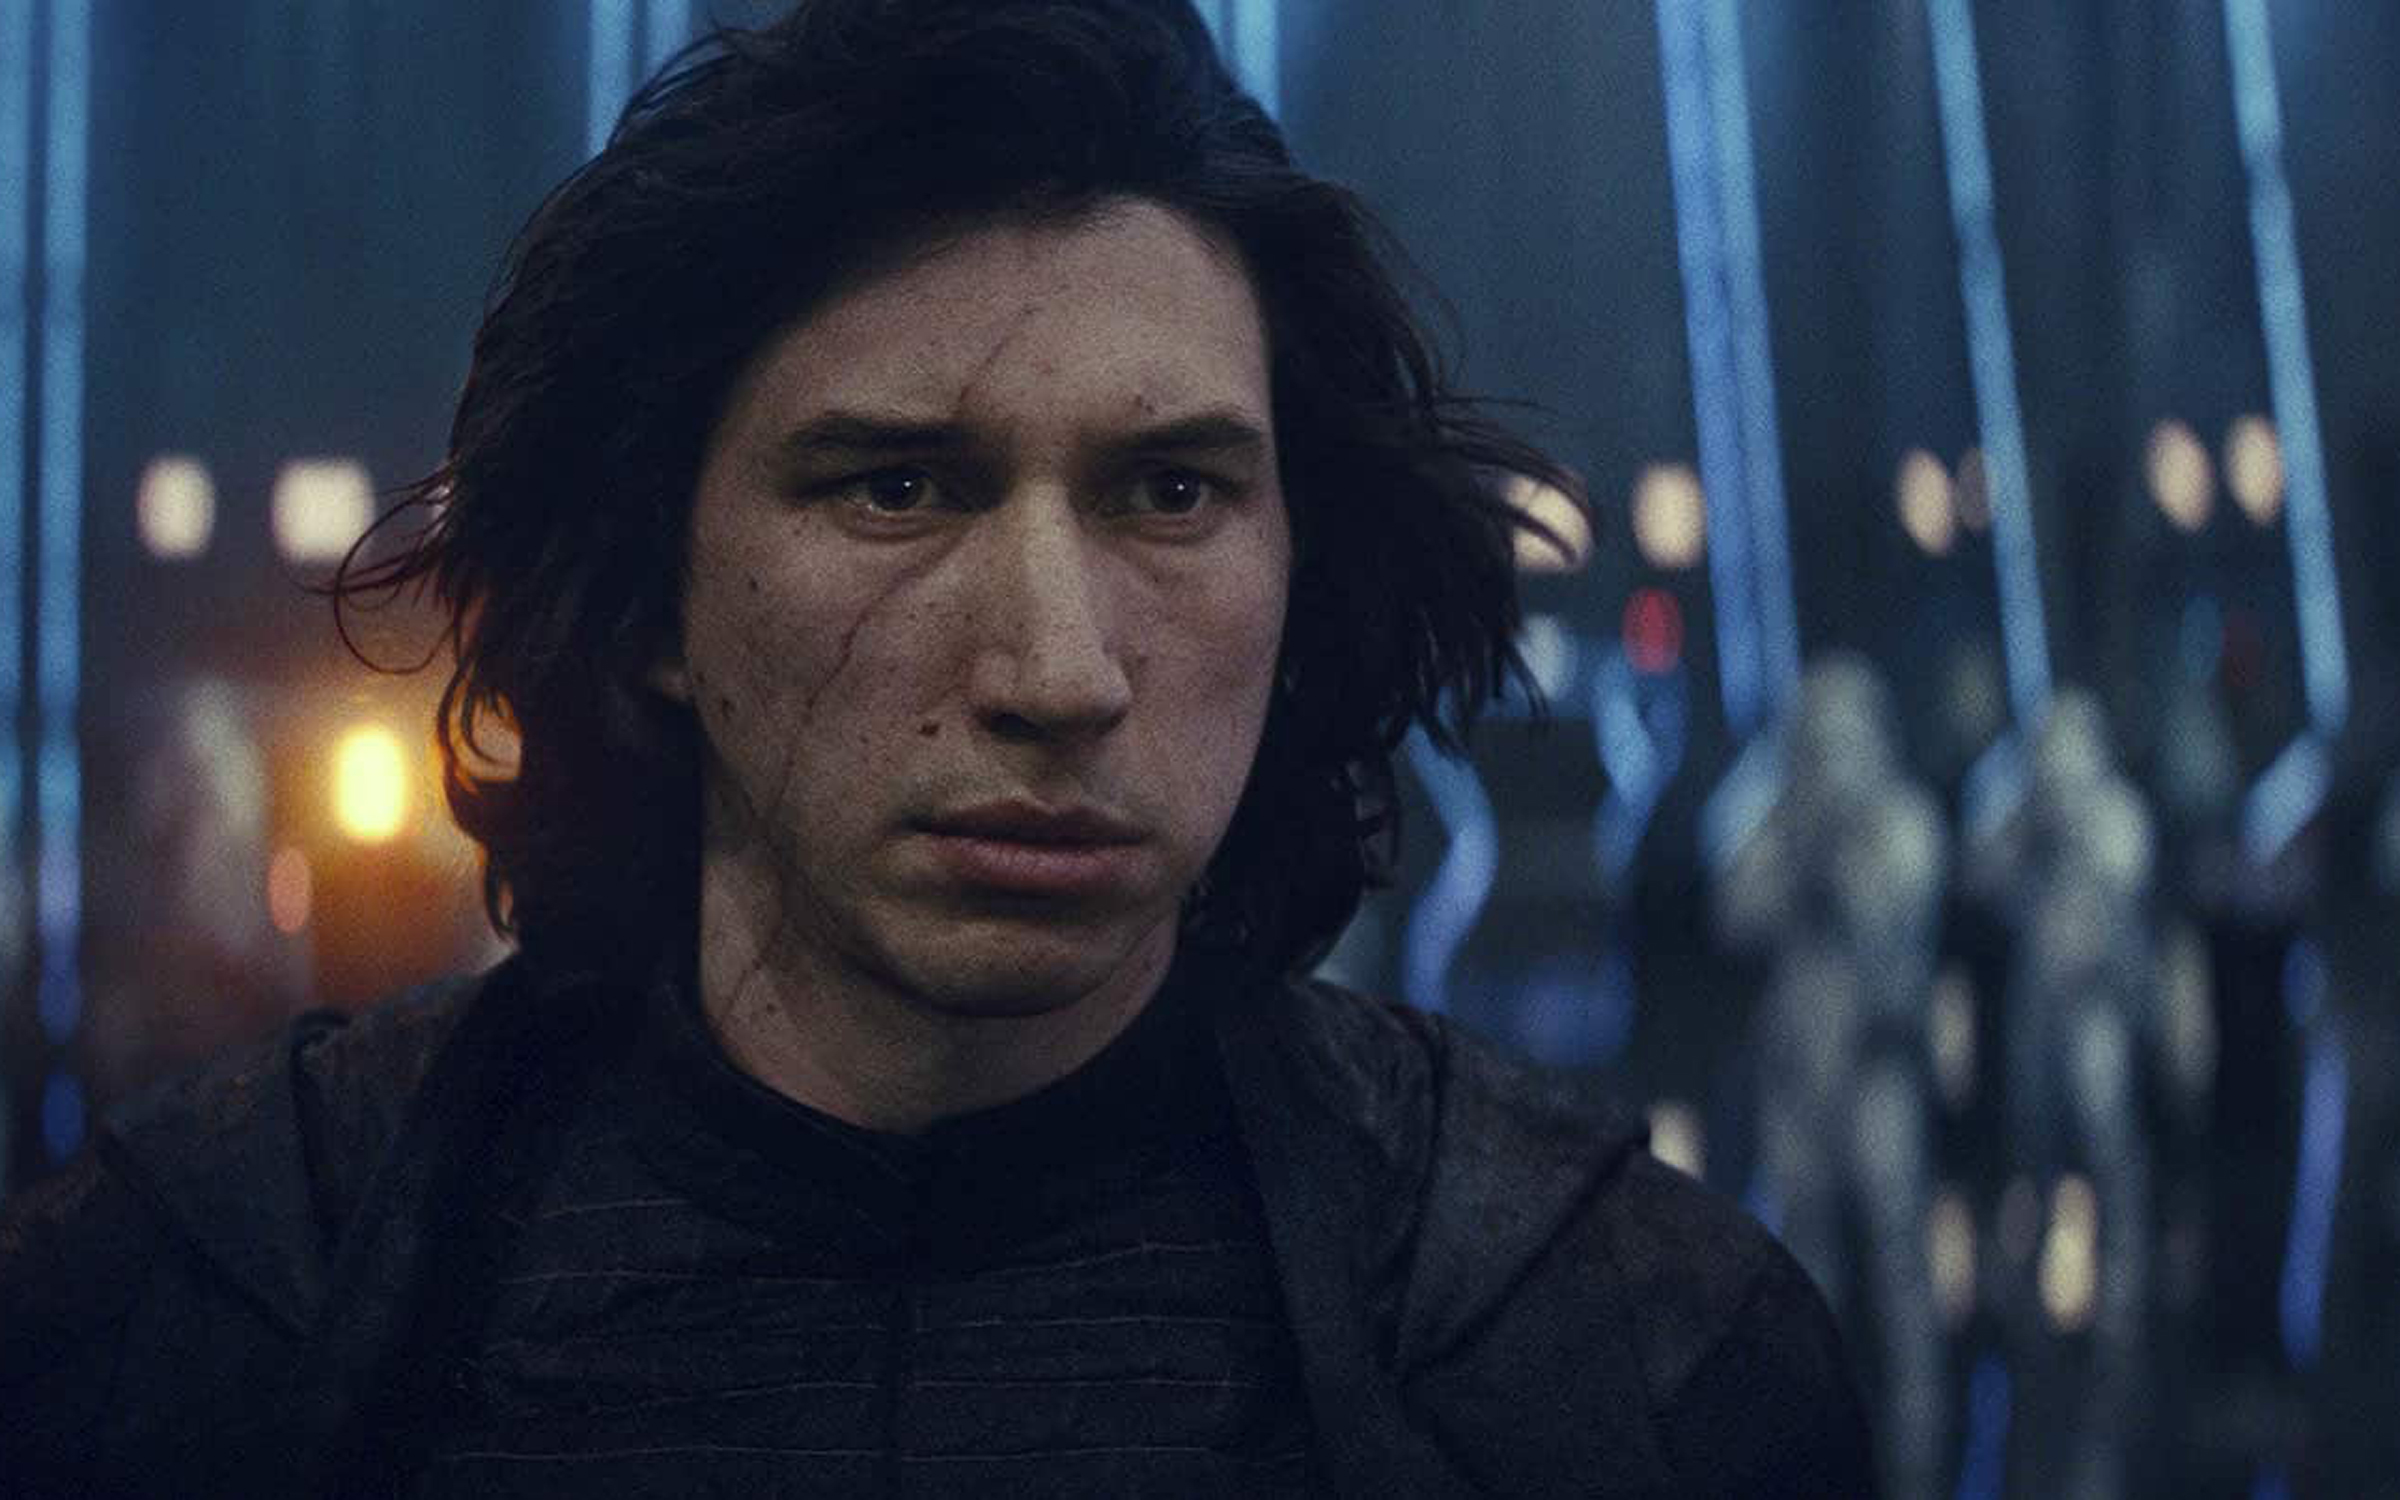 A closeup of Adam Driver's face, looking mopey, with Storm Troopers in the background